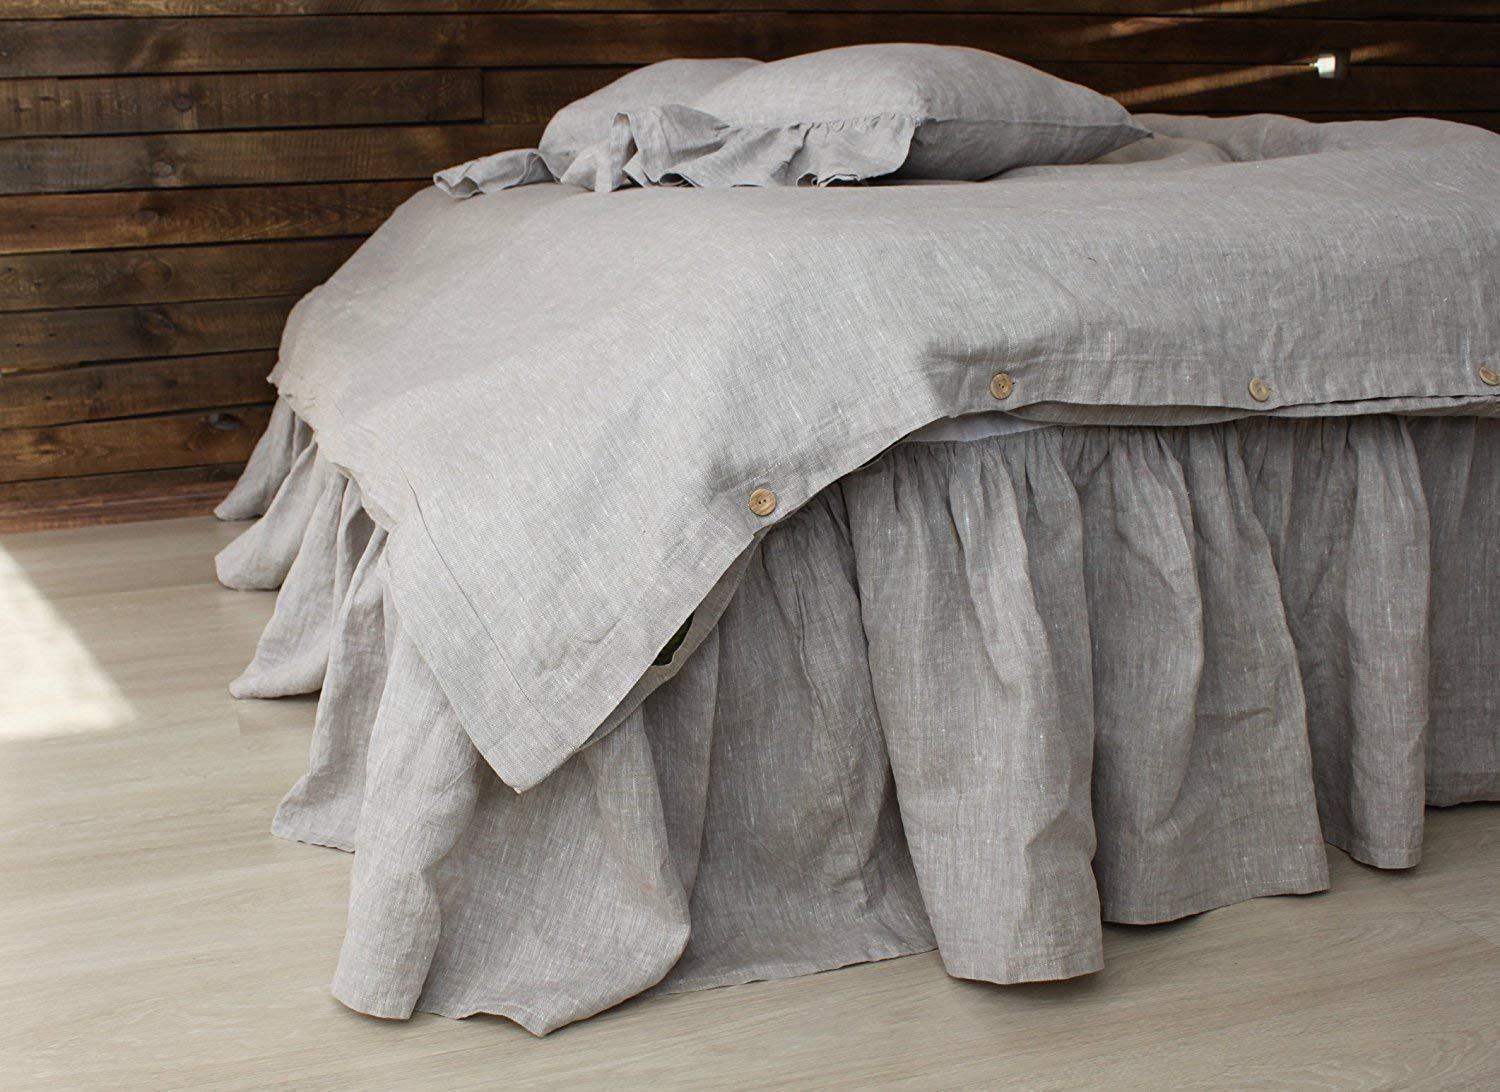 Linen Bed Skirt with Gathered Ruffles and Linen Blend Decking - Natural Linen Oatmeal, White or Grey Colors